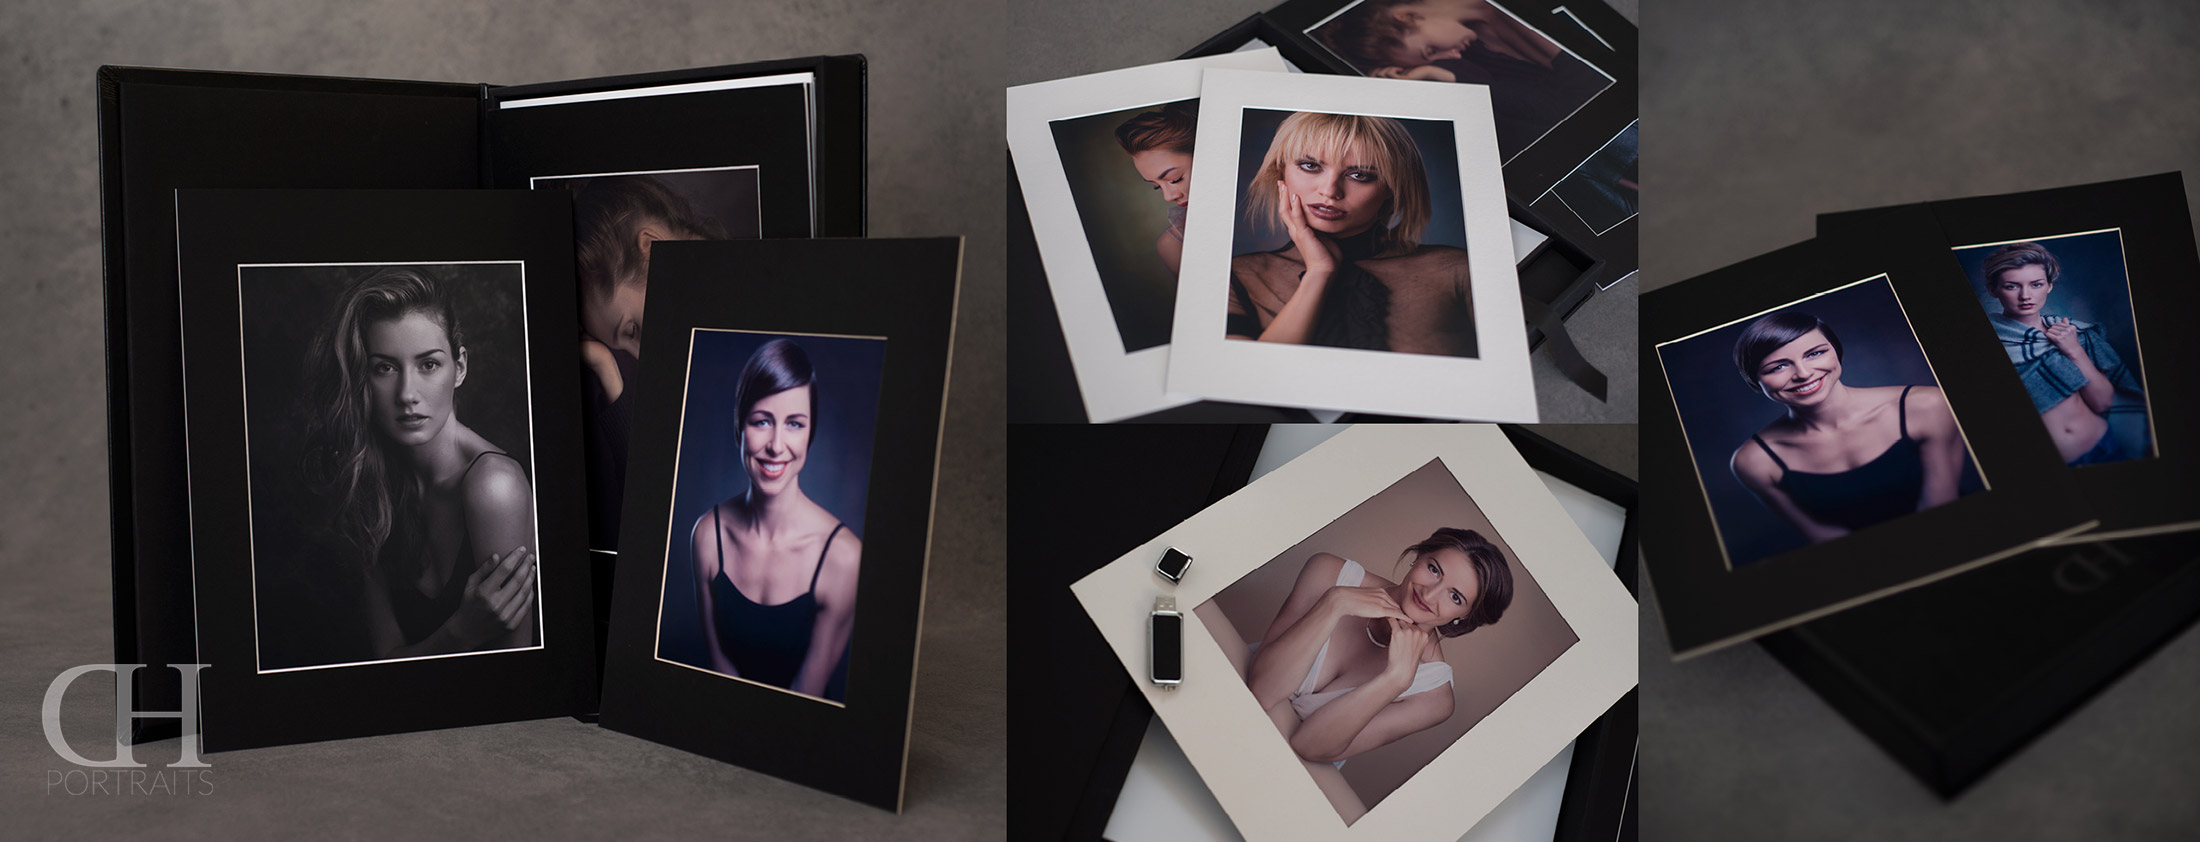 Leather Folio Boxes & Mats - Exclusive High Class Print Products - Dan Hostettler Portraits